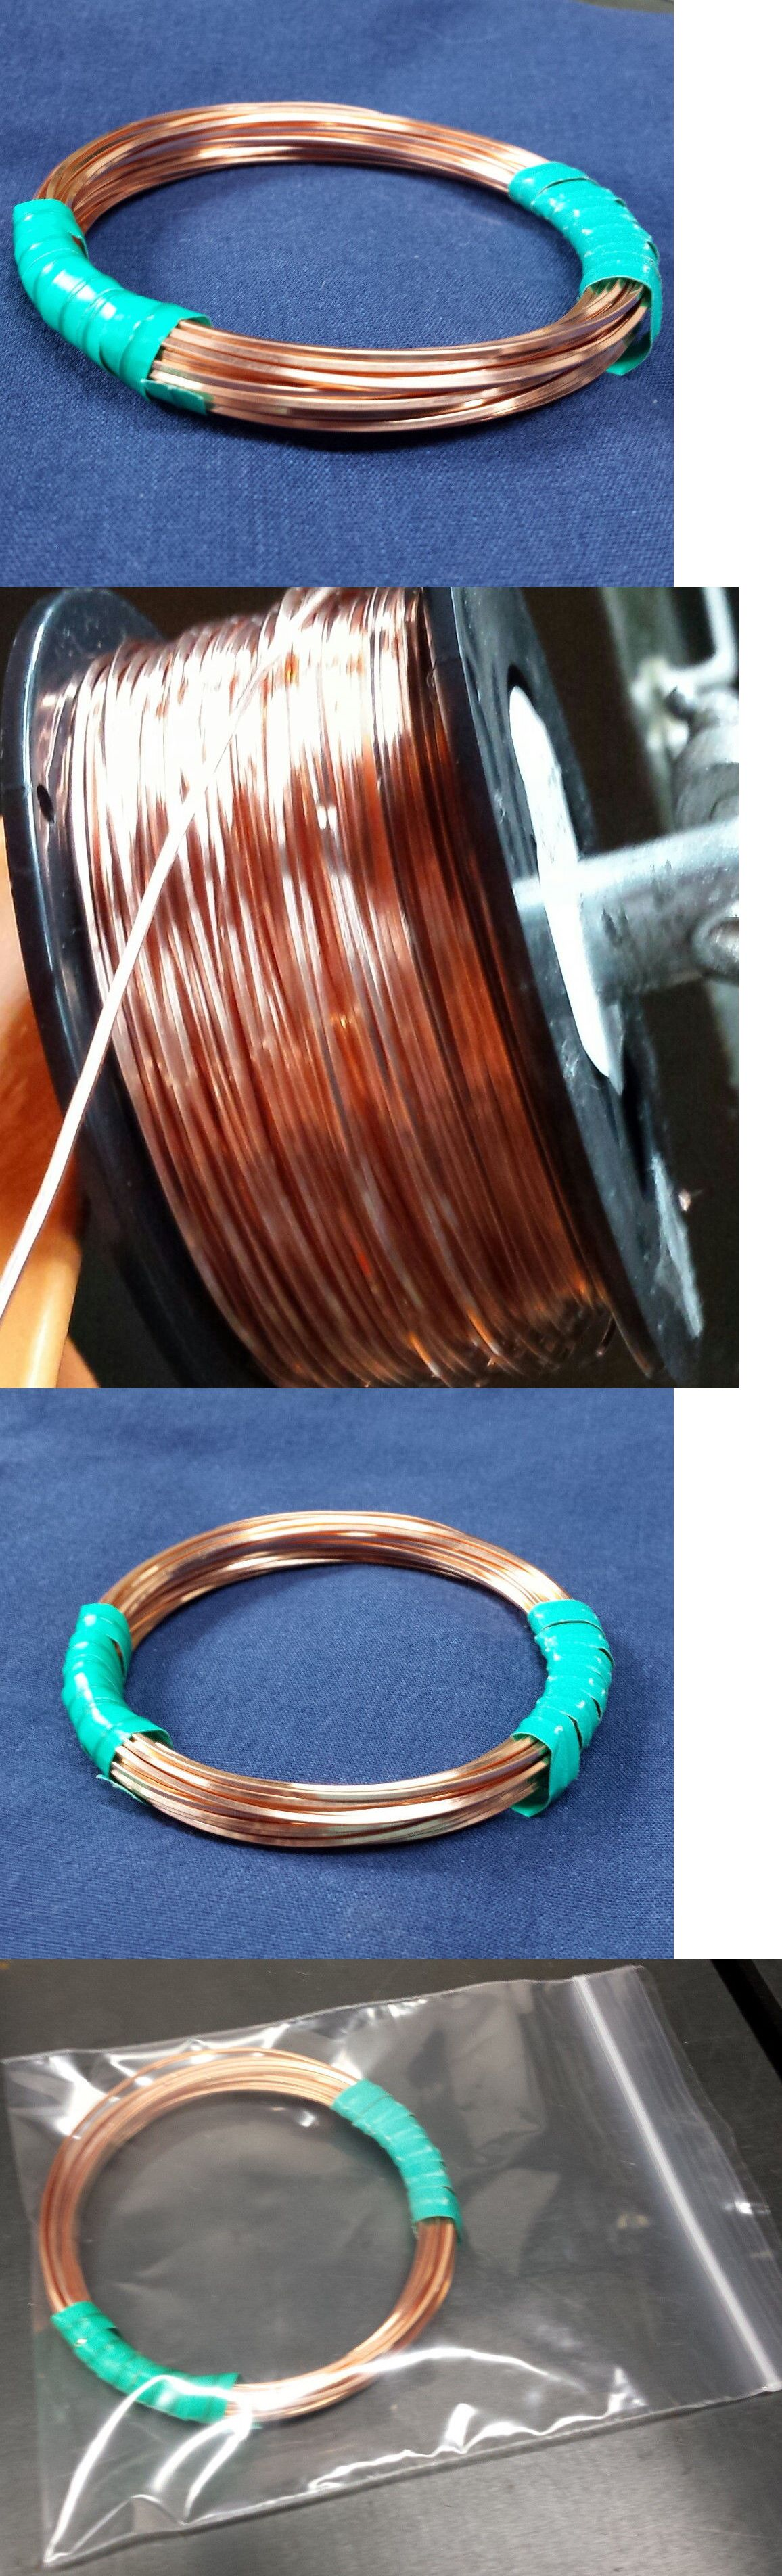 COPPER Wire SQUARE Coils 99.9% Pure 5 - 40 FT Gauges 10-24 DEAD SOFT ...